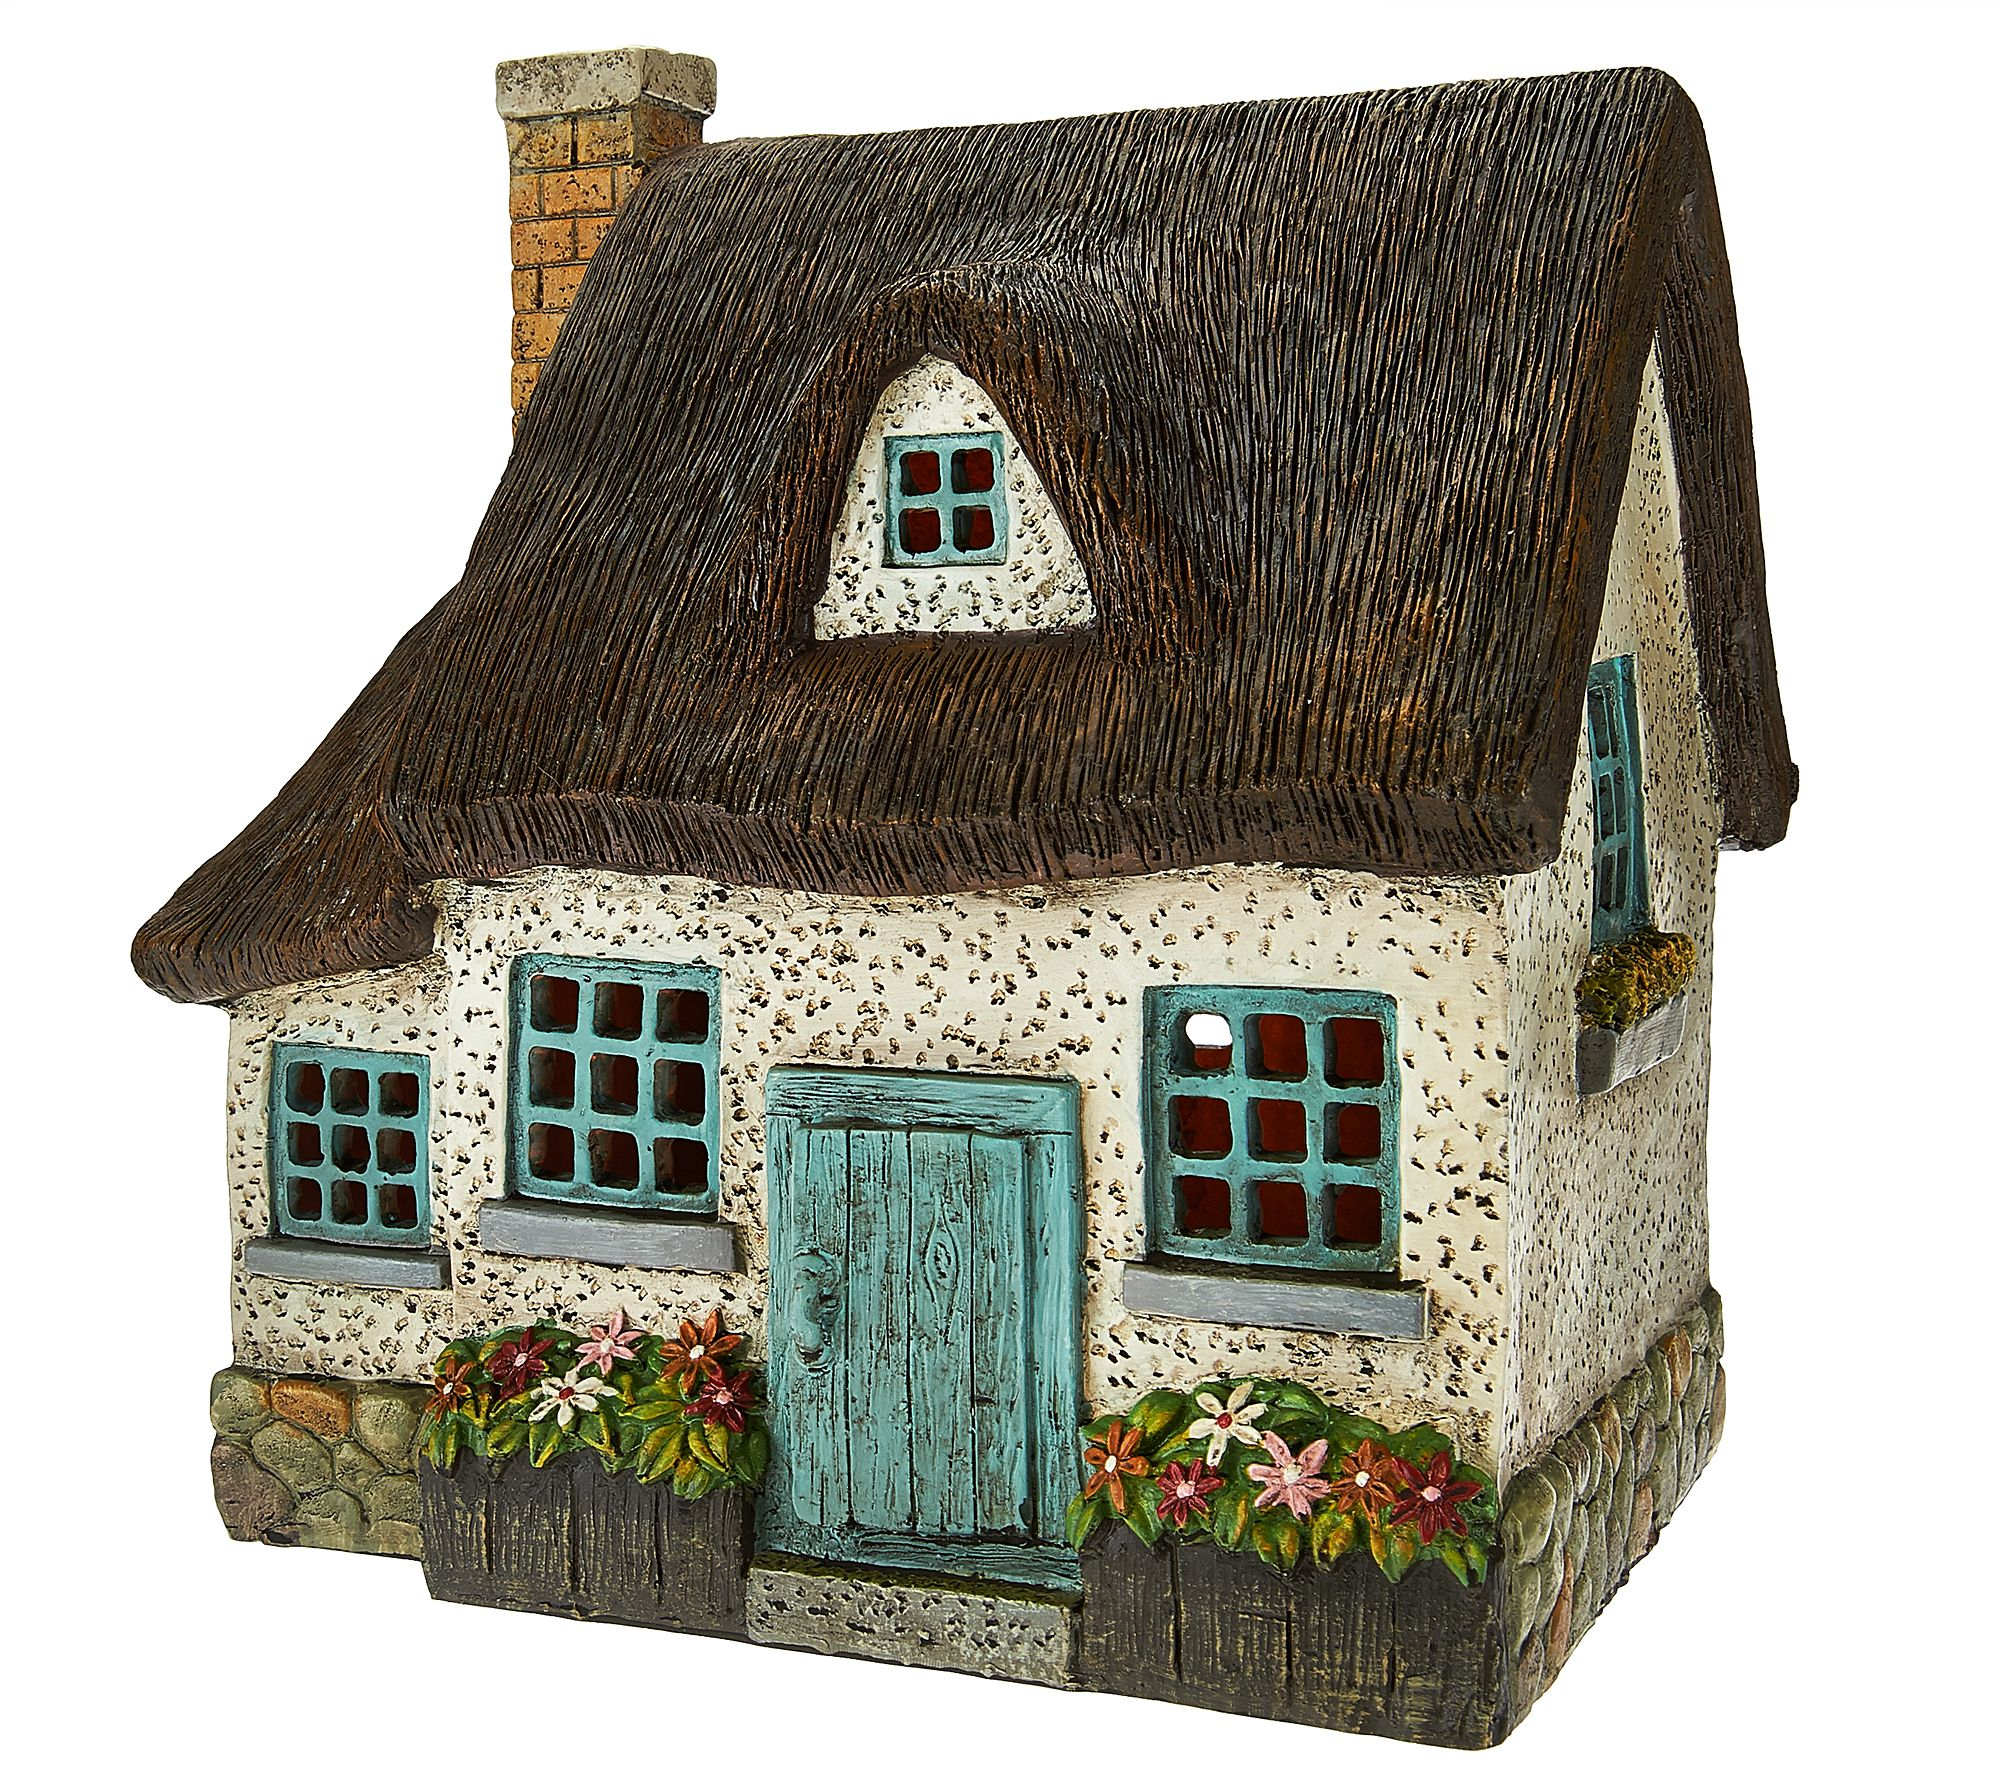 Plow & Hearth Indoor/Outdoor Resin Cottage with LED Lights